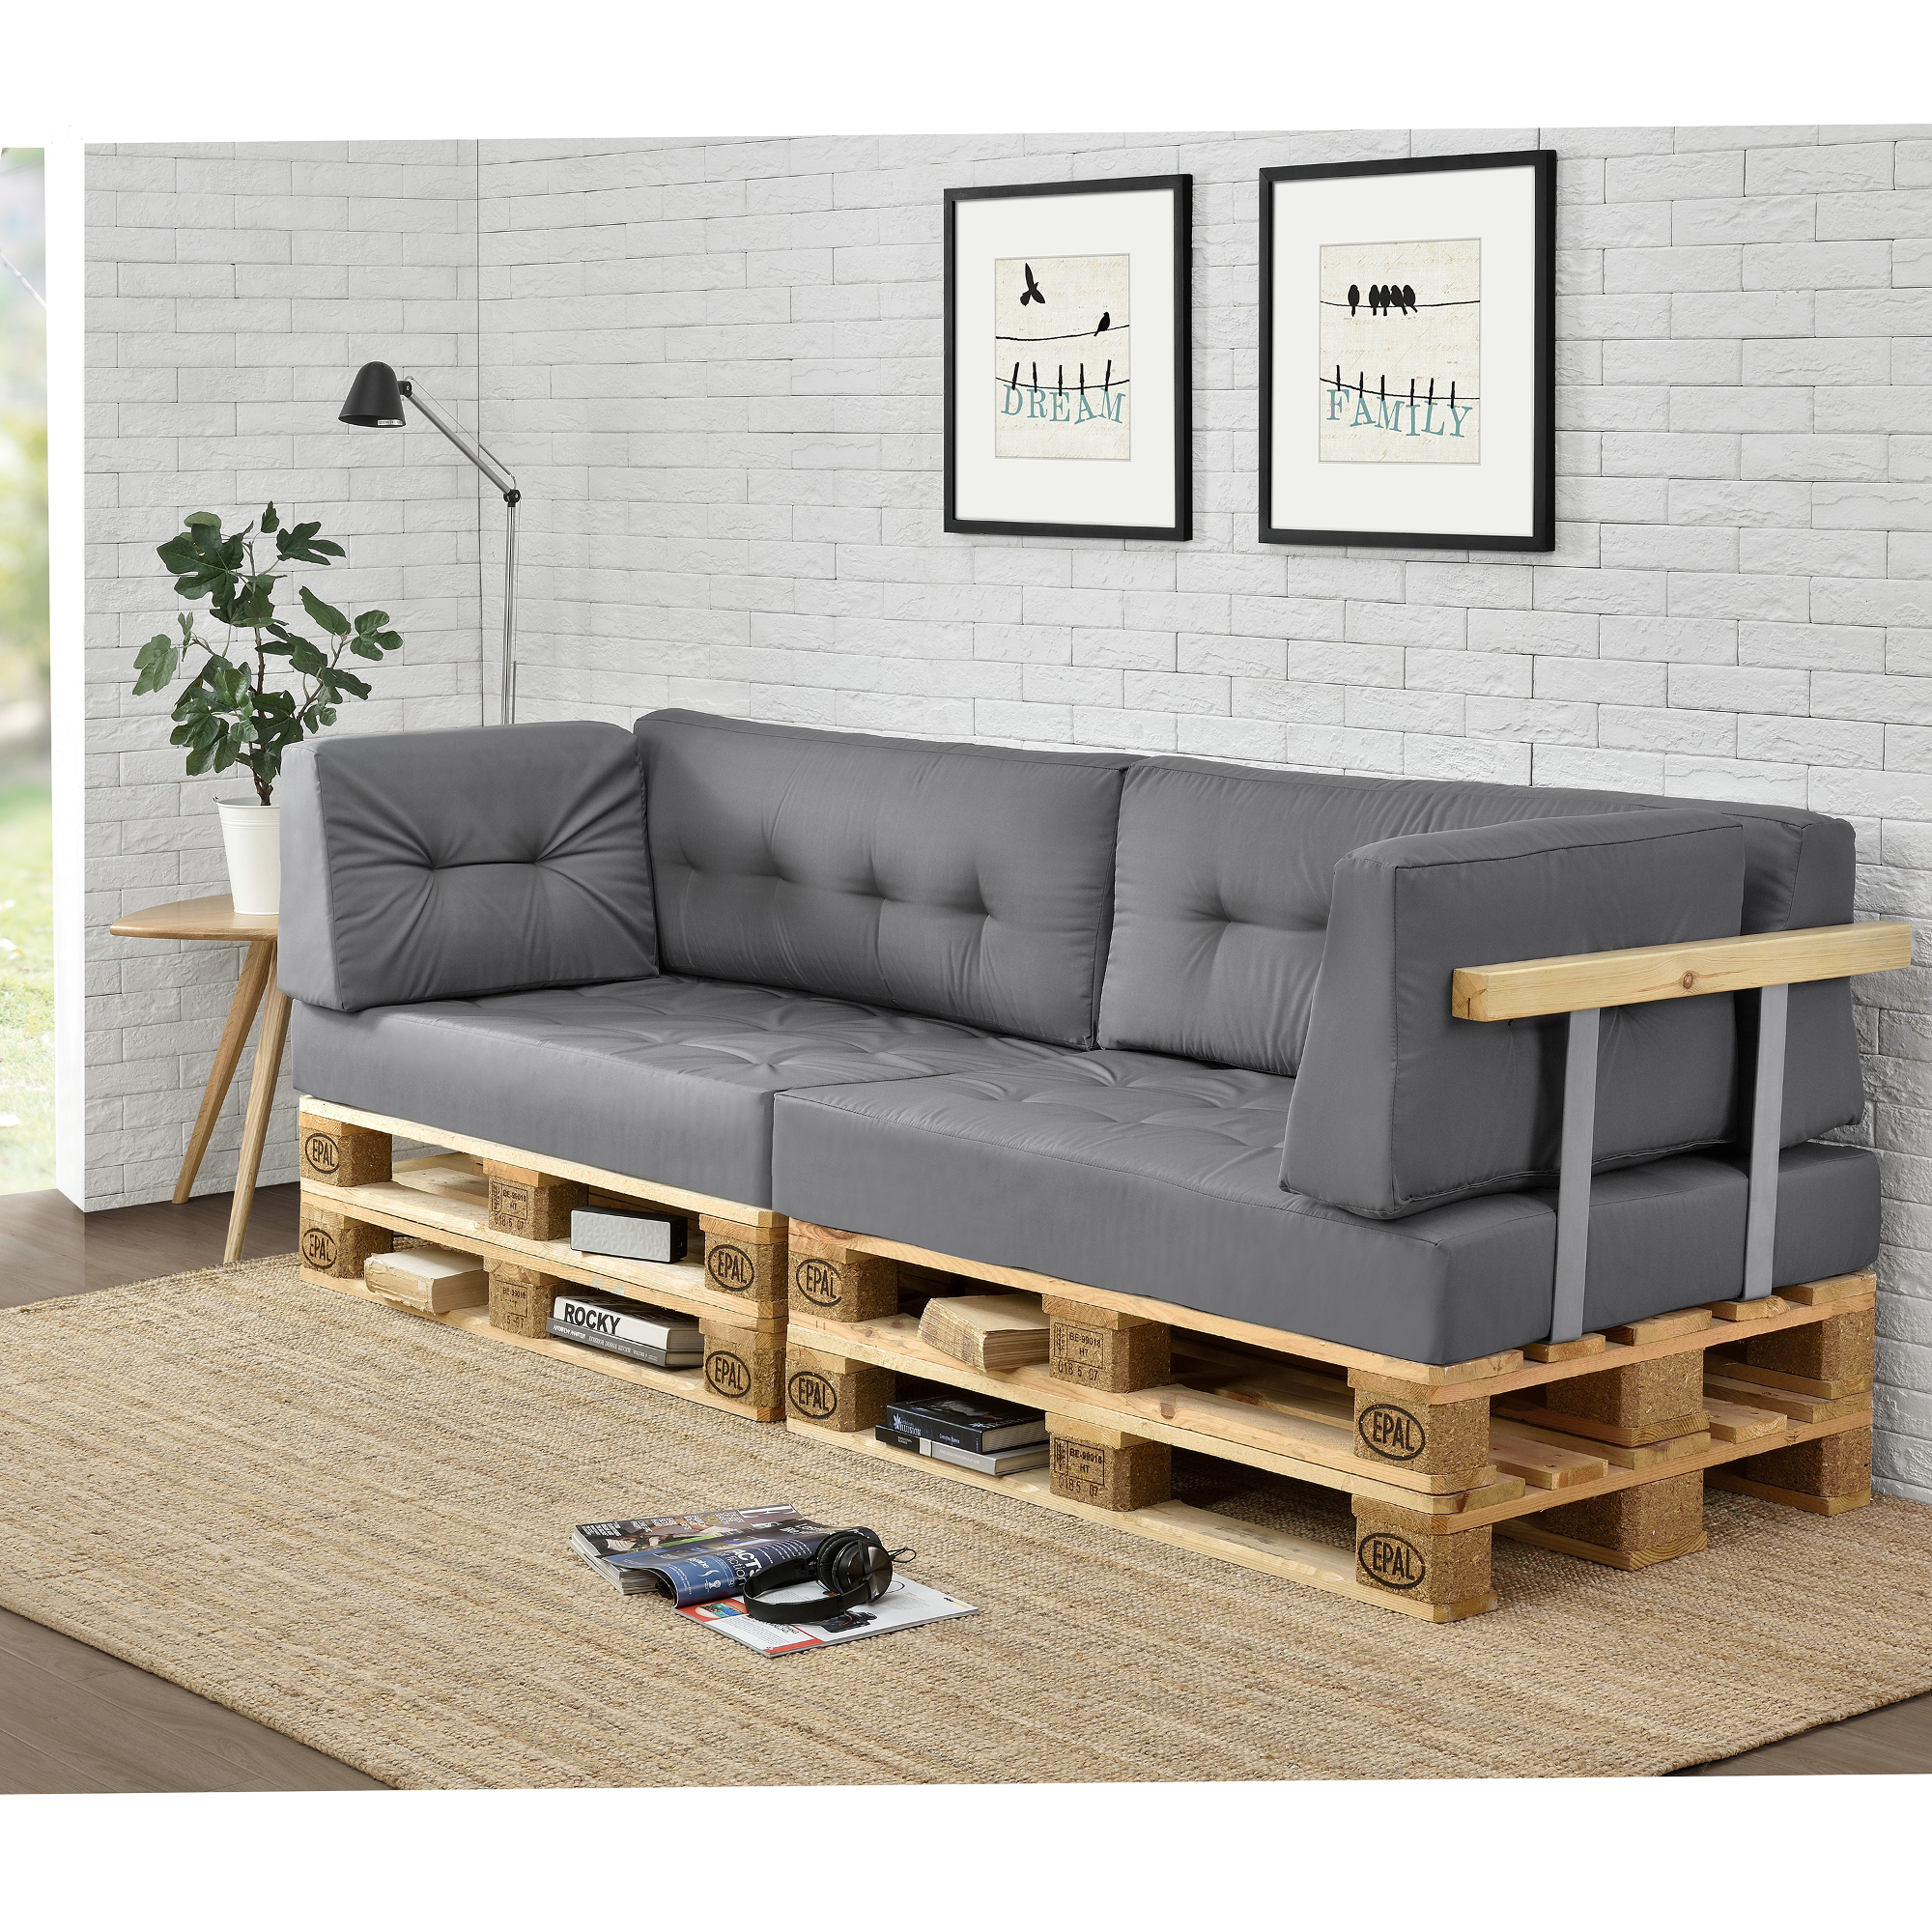 palettenkissen in outdoor paletten kissen sofa polster sitzauflage. Black Bedroom Furniture Sets. Home Design Ideas